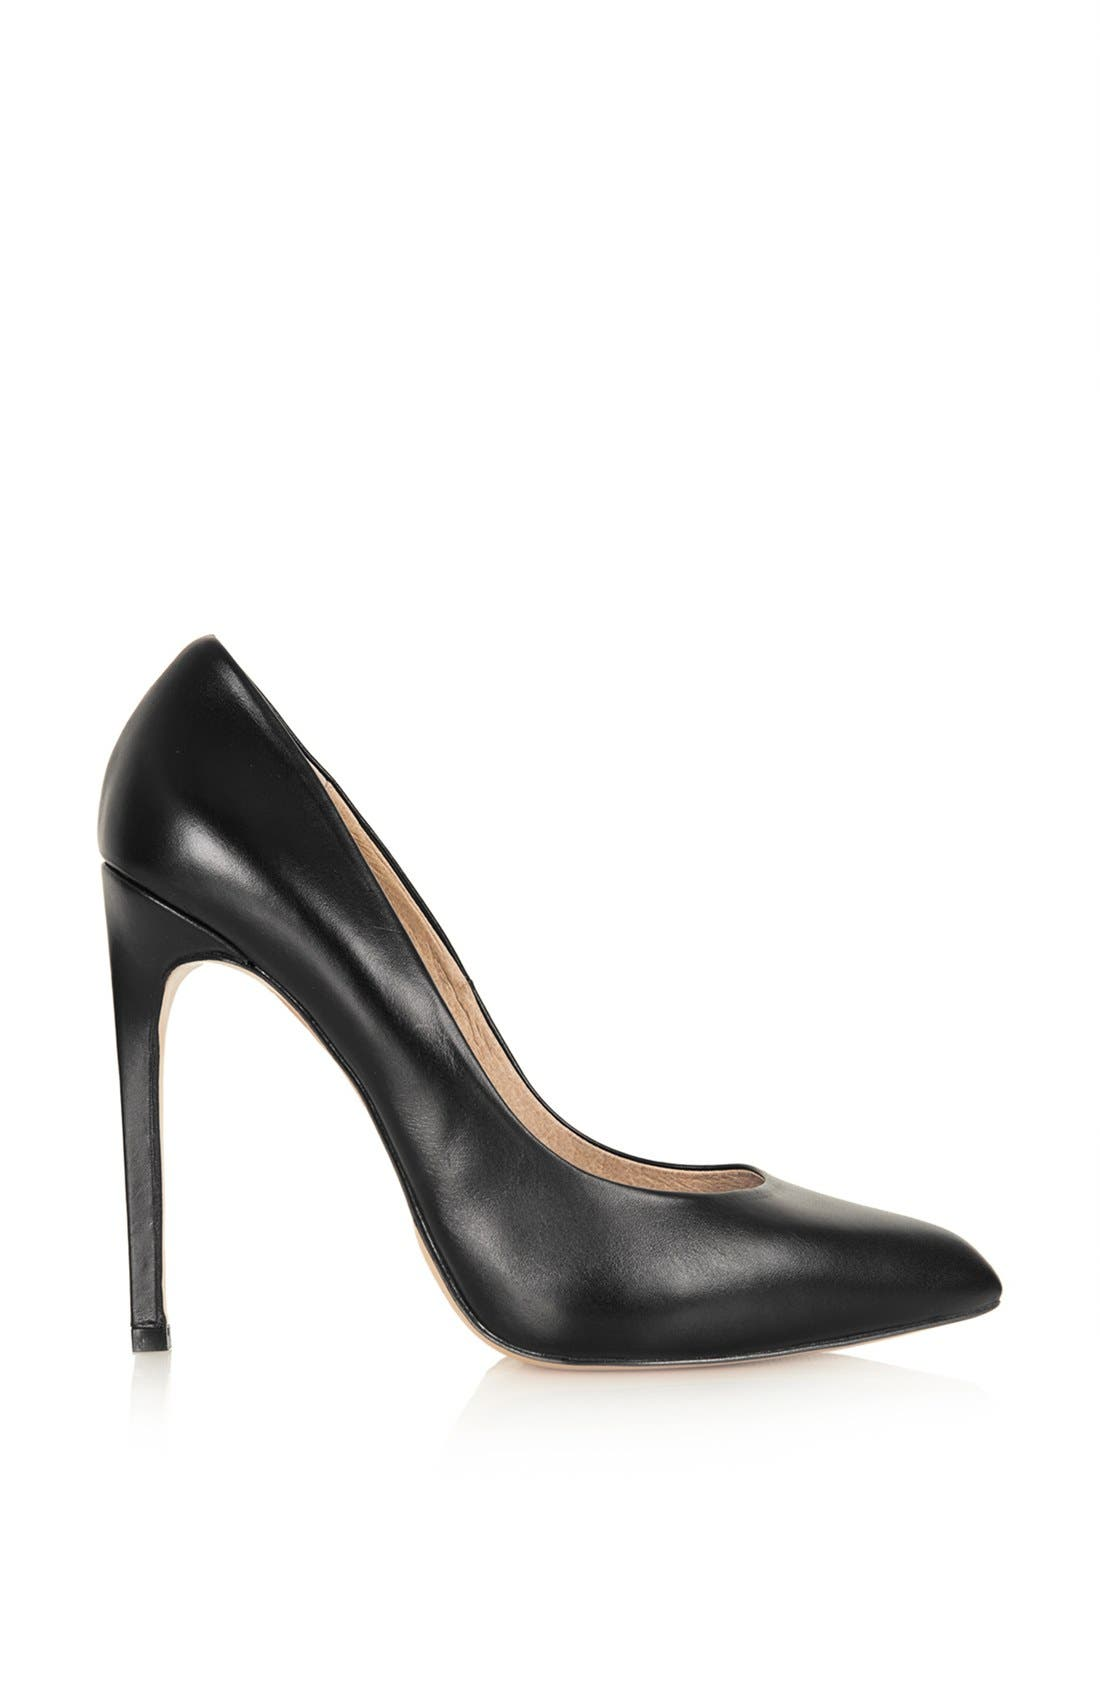 Main Image - Topshop 'The Collection Starring Kate Bosworth' Pump